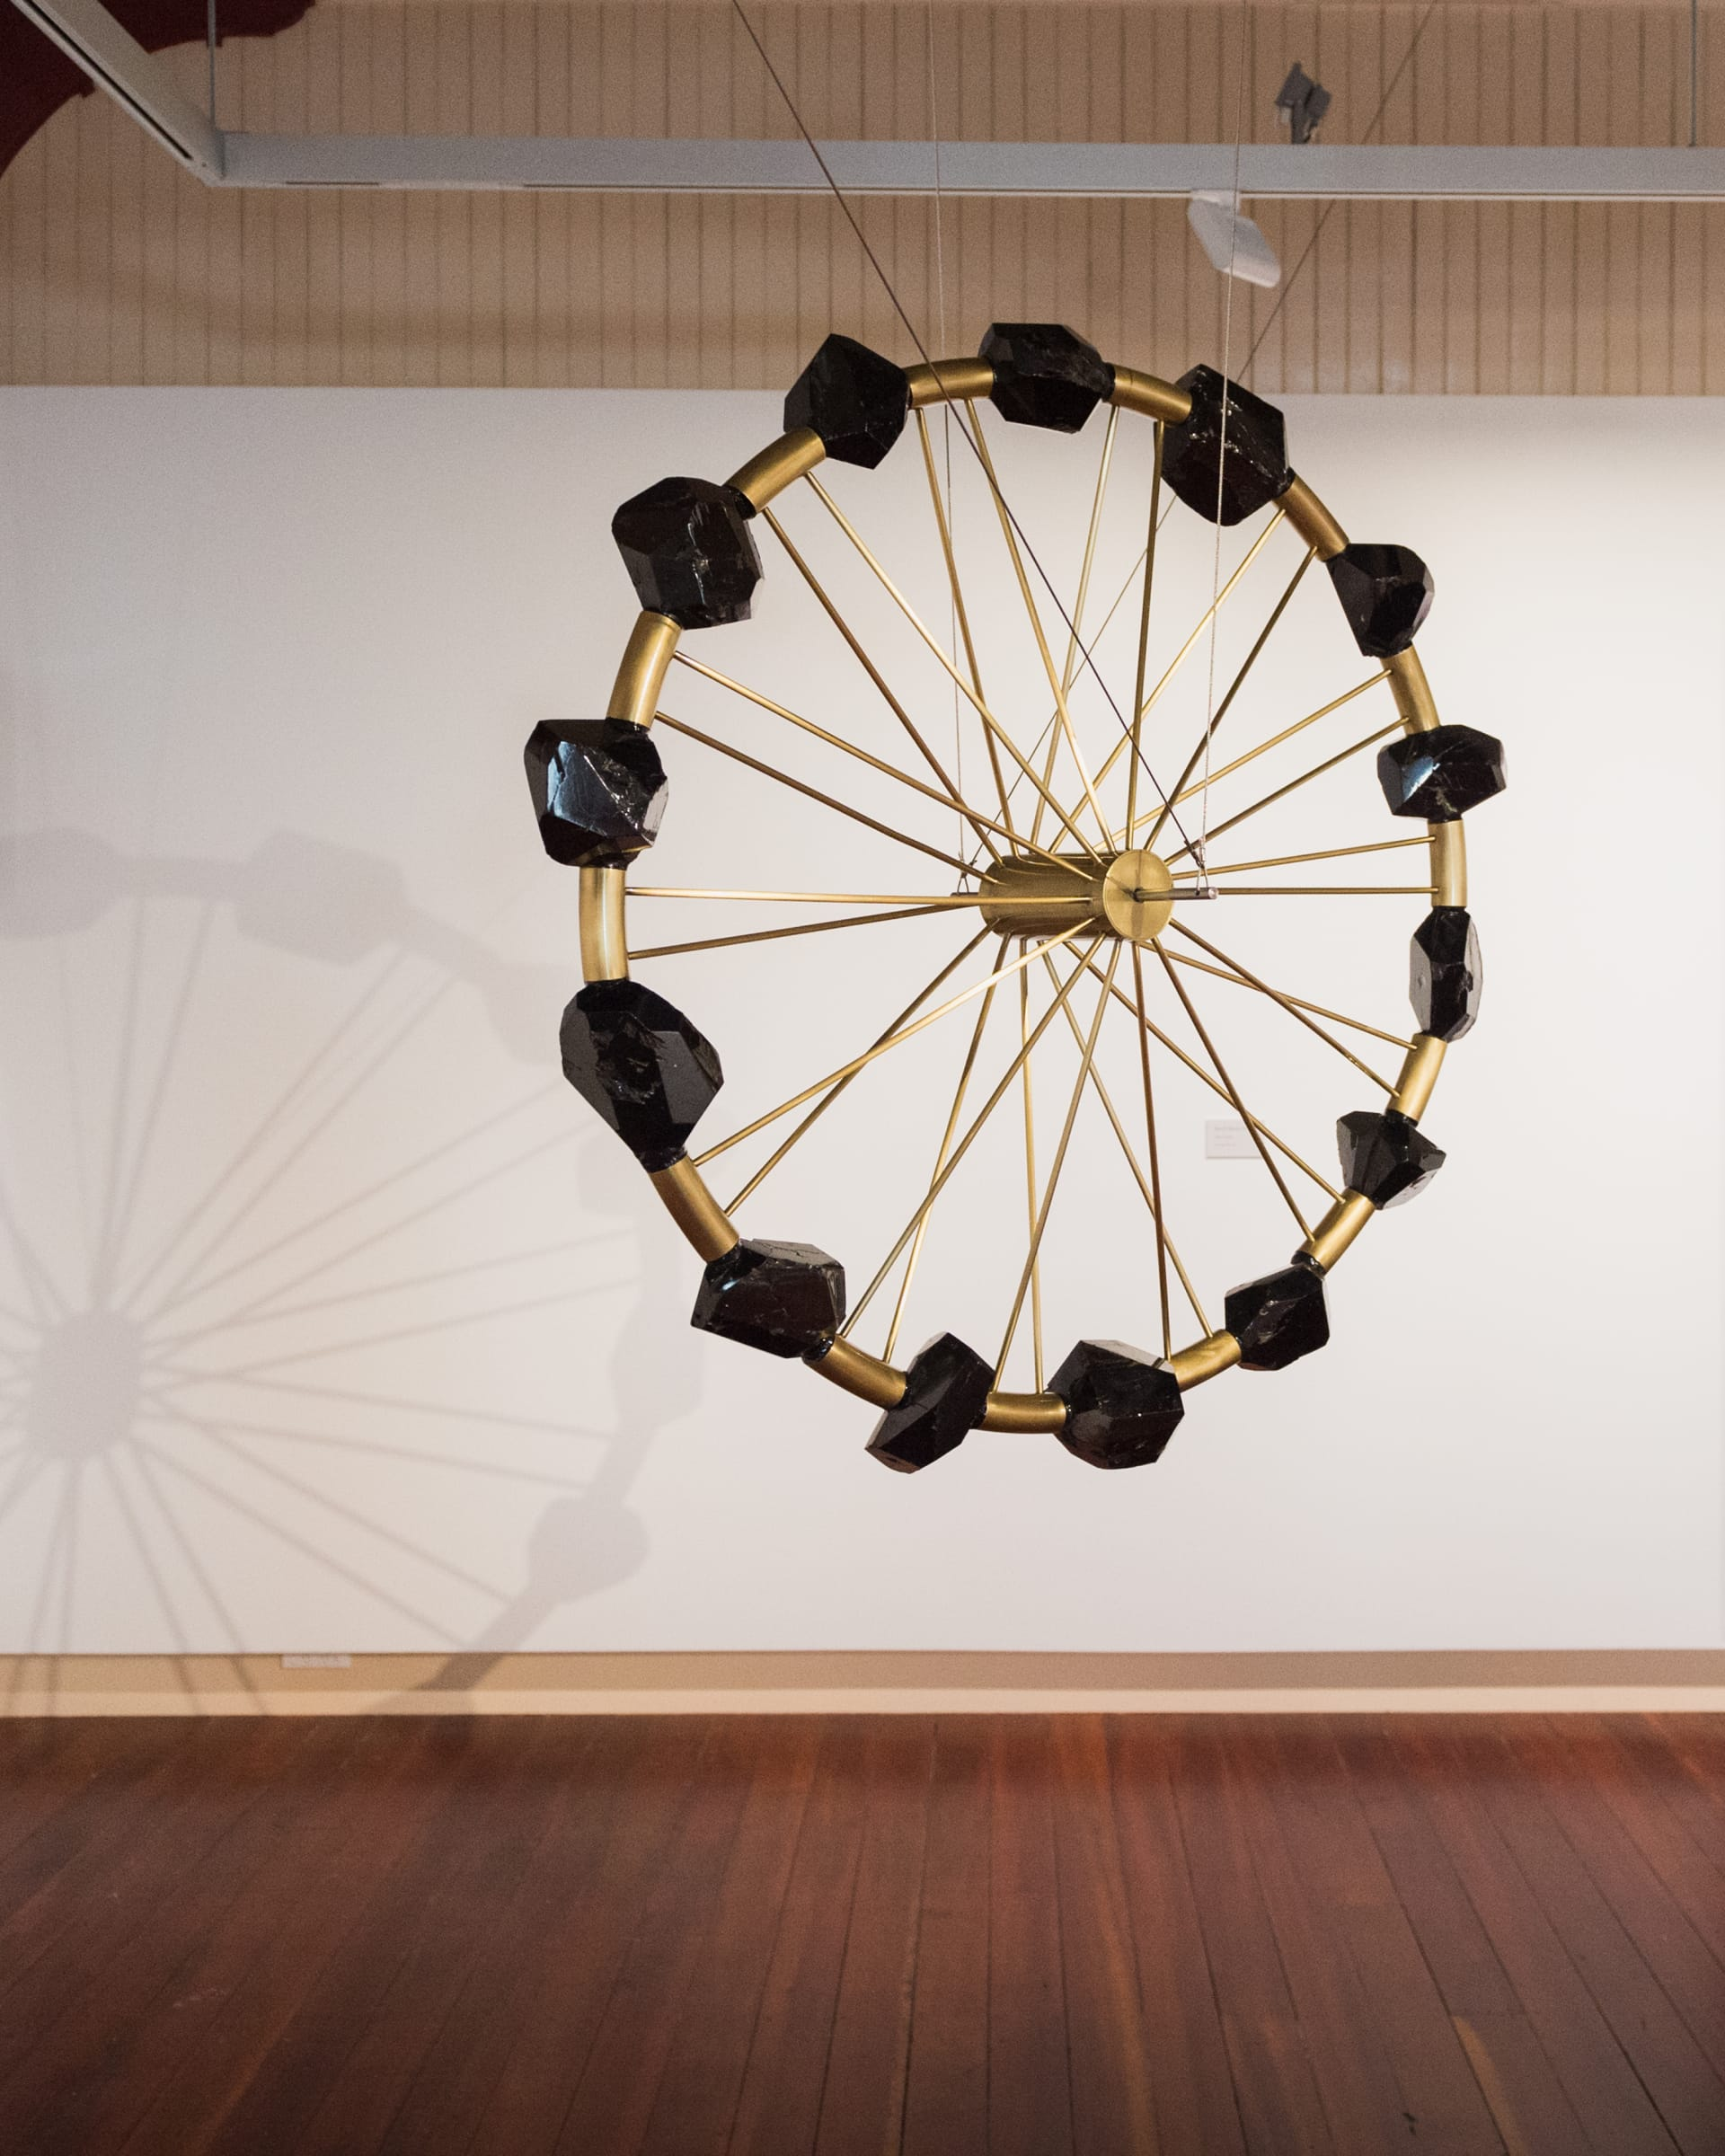 "<span class=""link fancybox-details-link""><a href=""/artists/47-andrew-drummond/works/7239-andrew-drummond-suspended-coal-wheel-1997-1998/"">View Detail Page</a></span><div class=""artist""><strong>Andrew Drummond</strong></div> <div class=""title""><em>[Suspended] Coal Wheel</em>, 1997-1998</div> <div class=""medium"">Coal, brass, machined steel, wires</div> <div class=""dimensions"">63 x 63 in<br />160 x 160 cm</div>"